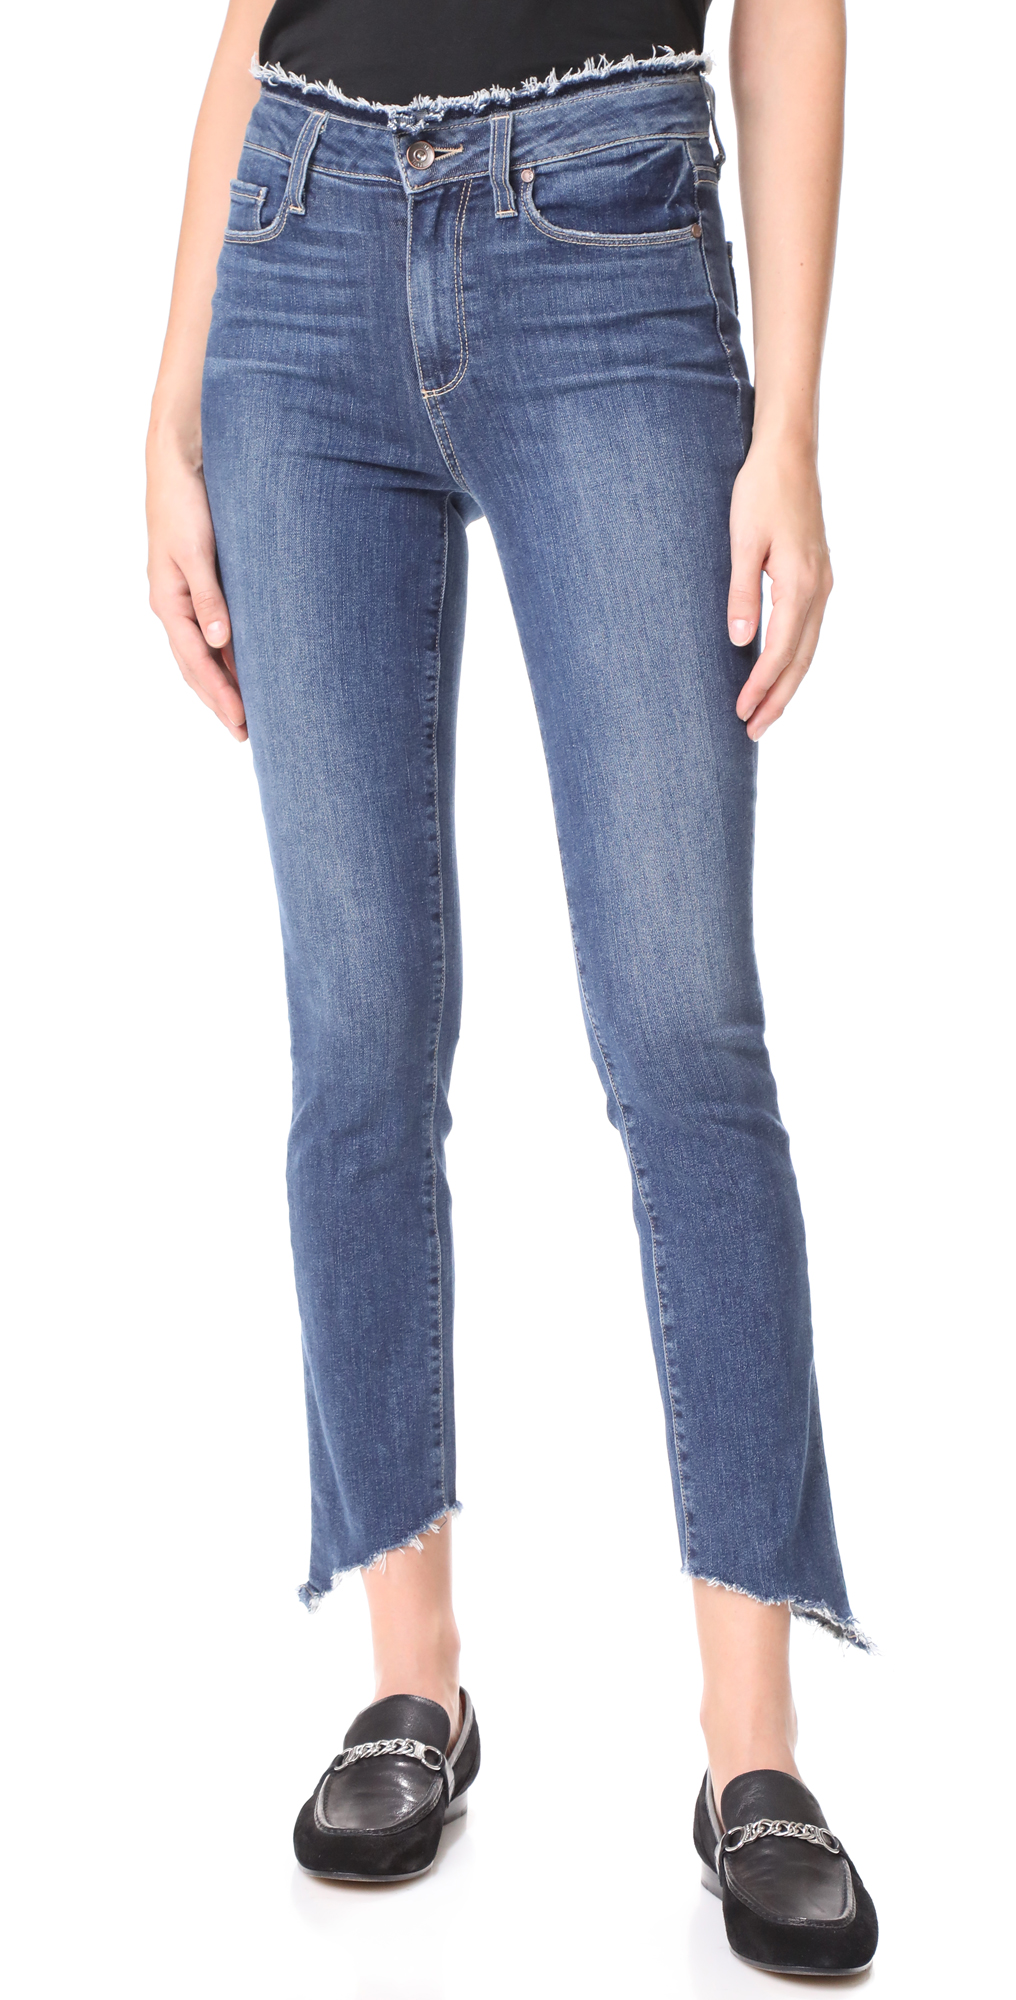 Frayed Hoxton Ankle Peg Jeans PAIGE